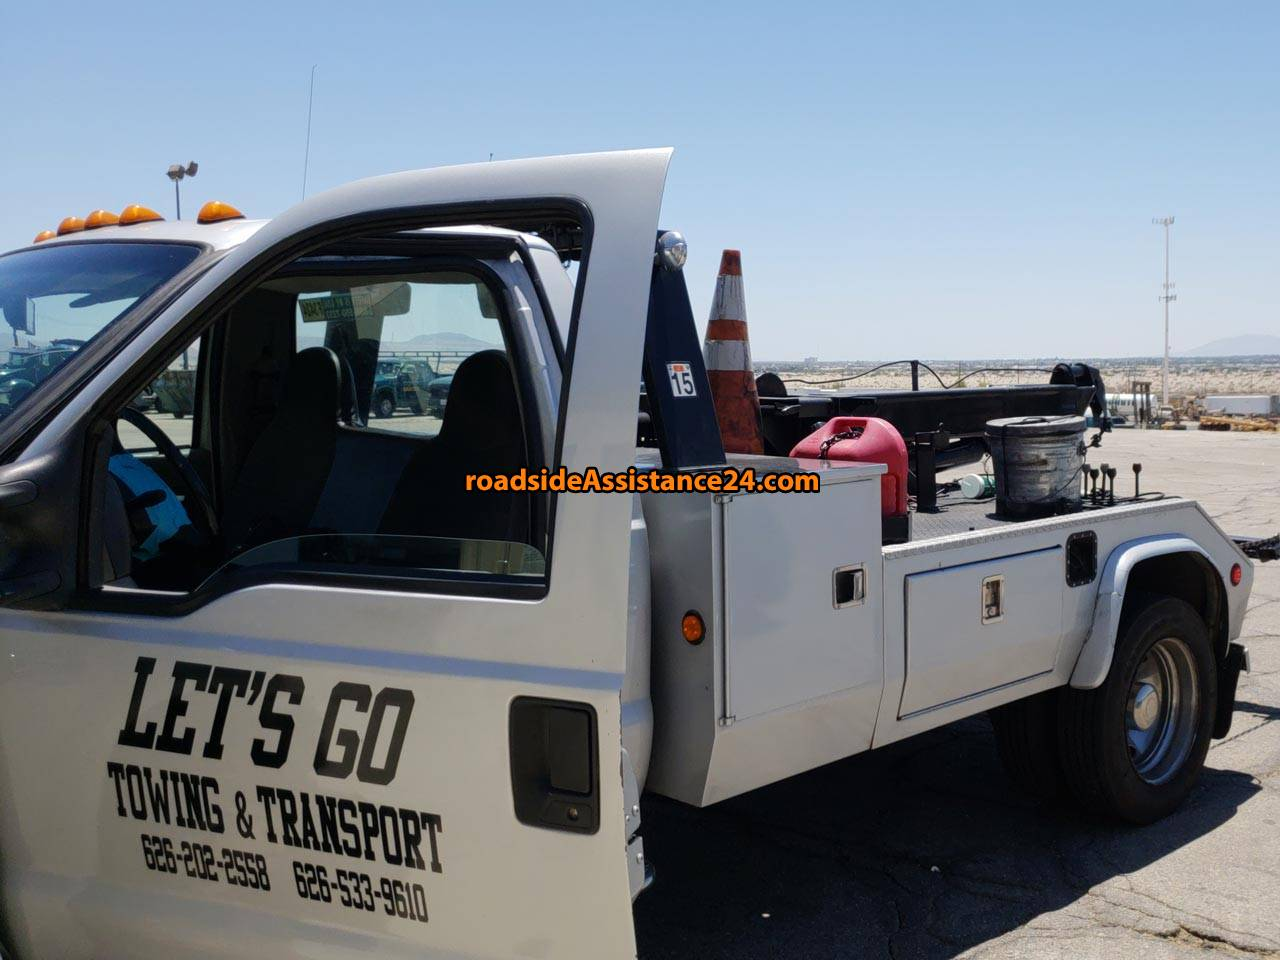 LET'S GO TOWING AND TRANSPORT